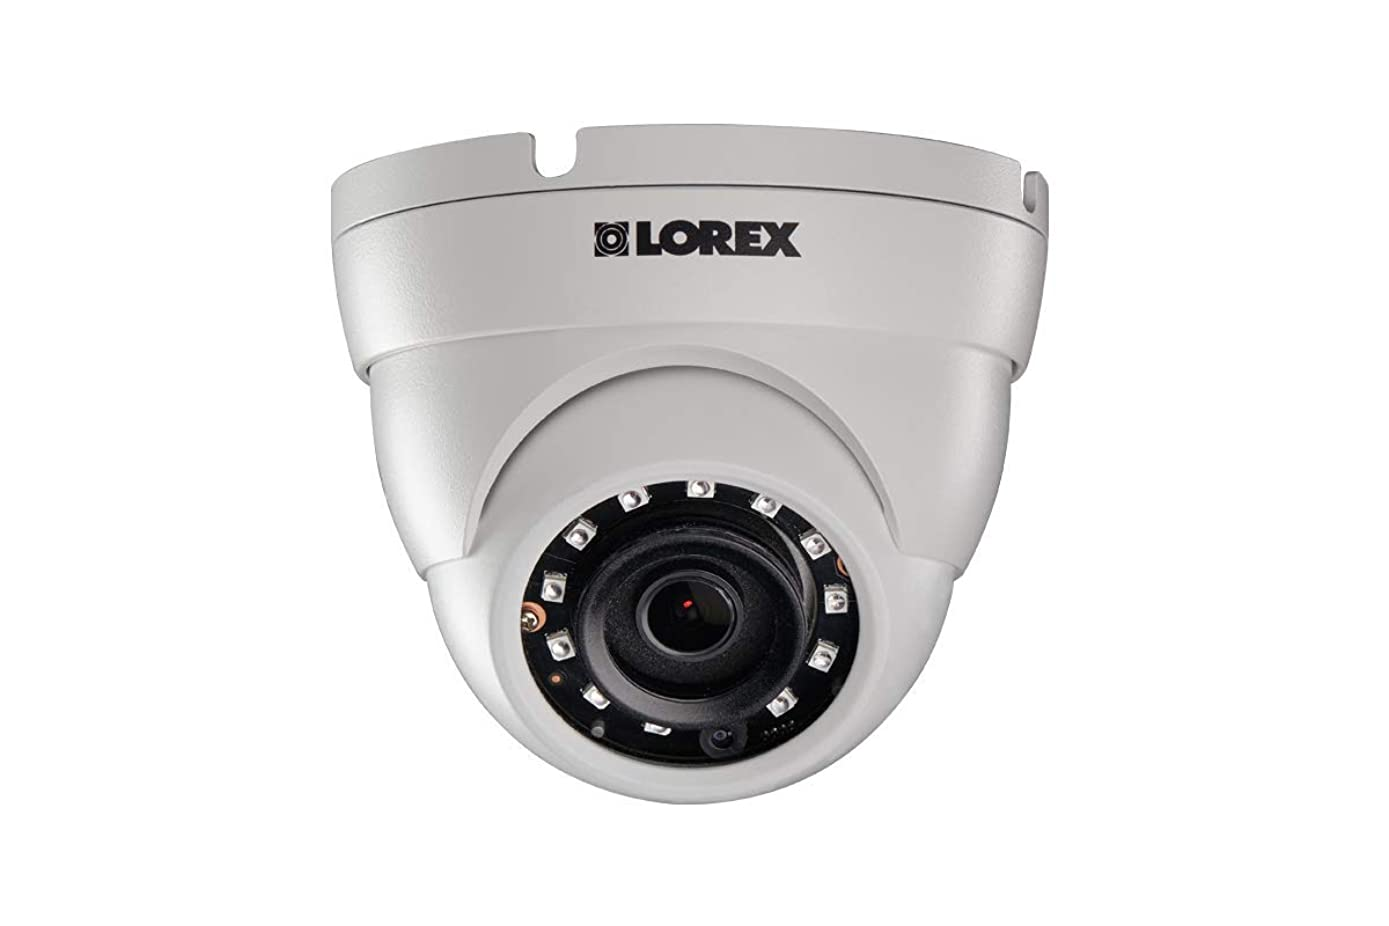 Lorex LNE4172 4MP High Definition IP Camera with Color Night Vision (Dome)